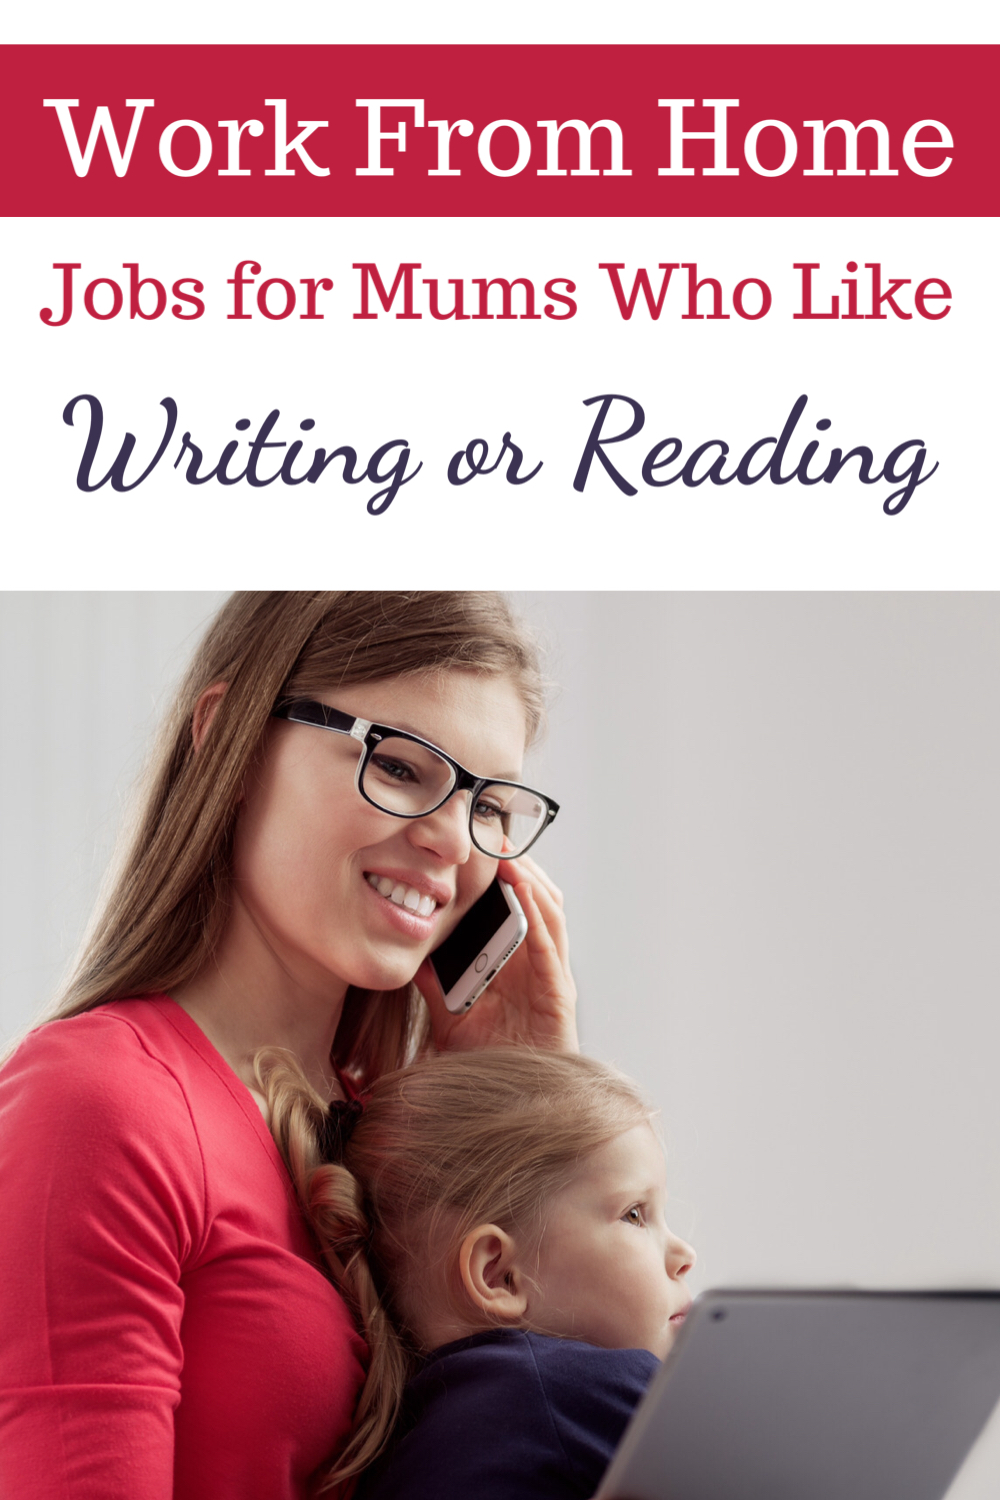 Work from home jobs for mums who like writing or reading